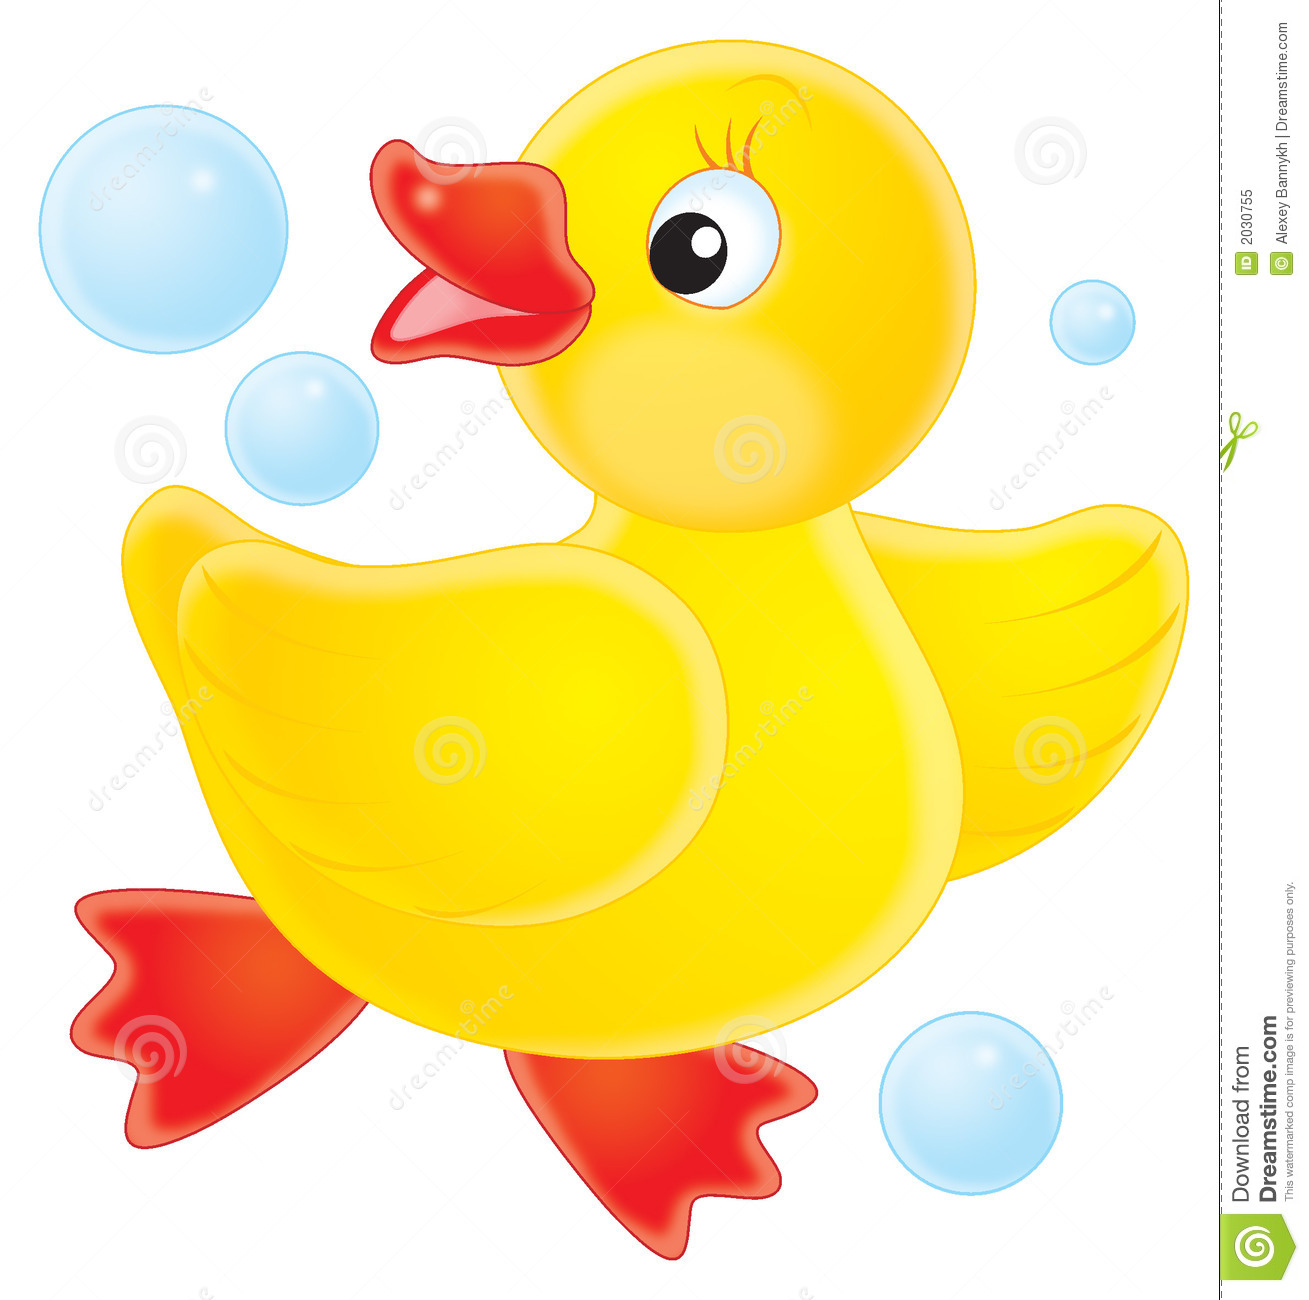 Duckling clipart #8, Download drawings